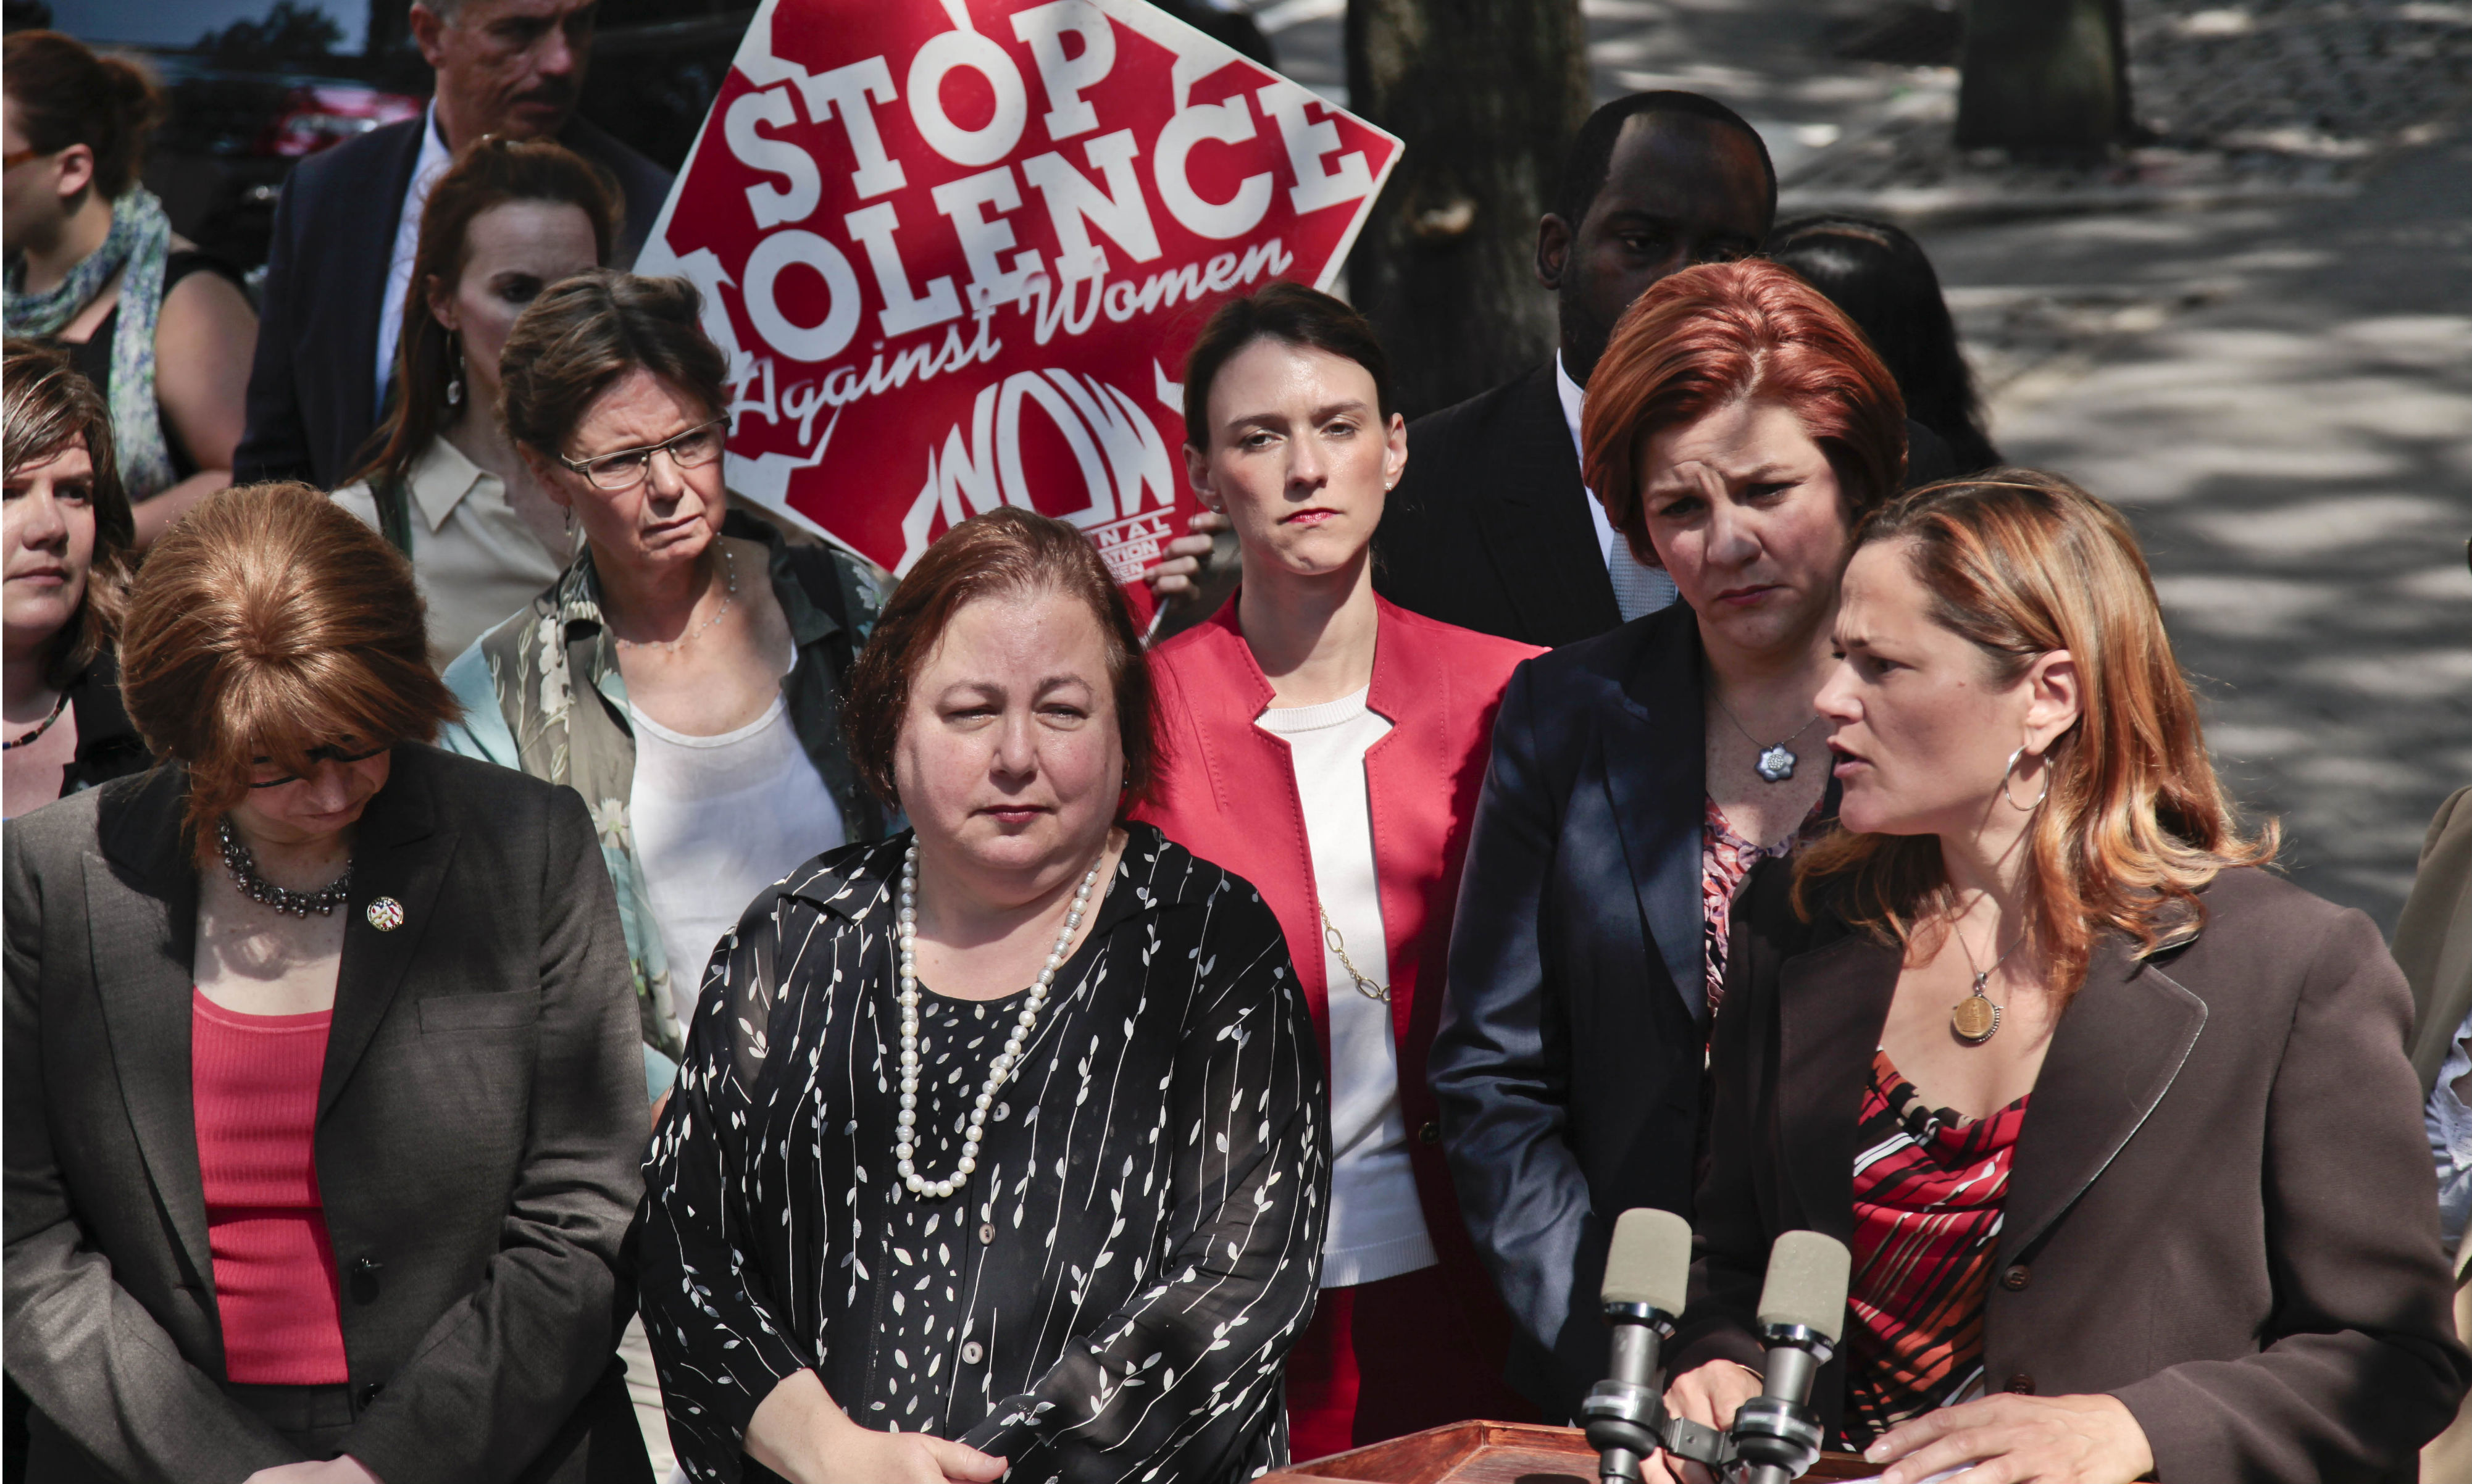 City-Council-member-Melissa-Mark-Viverito-right-speaks-at-a-news-conference-as-advocates-in-the-fight-against-violence-on-women.-AP-Photo